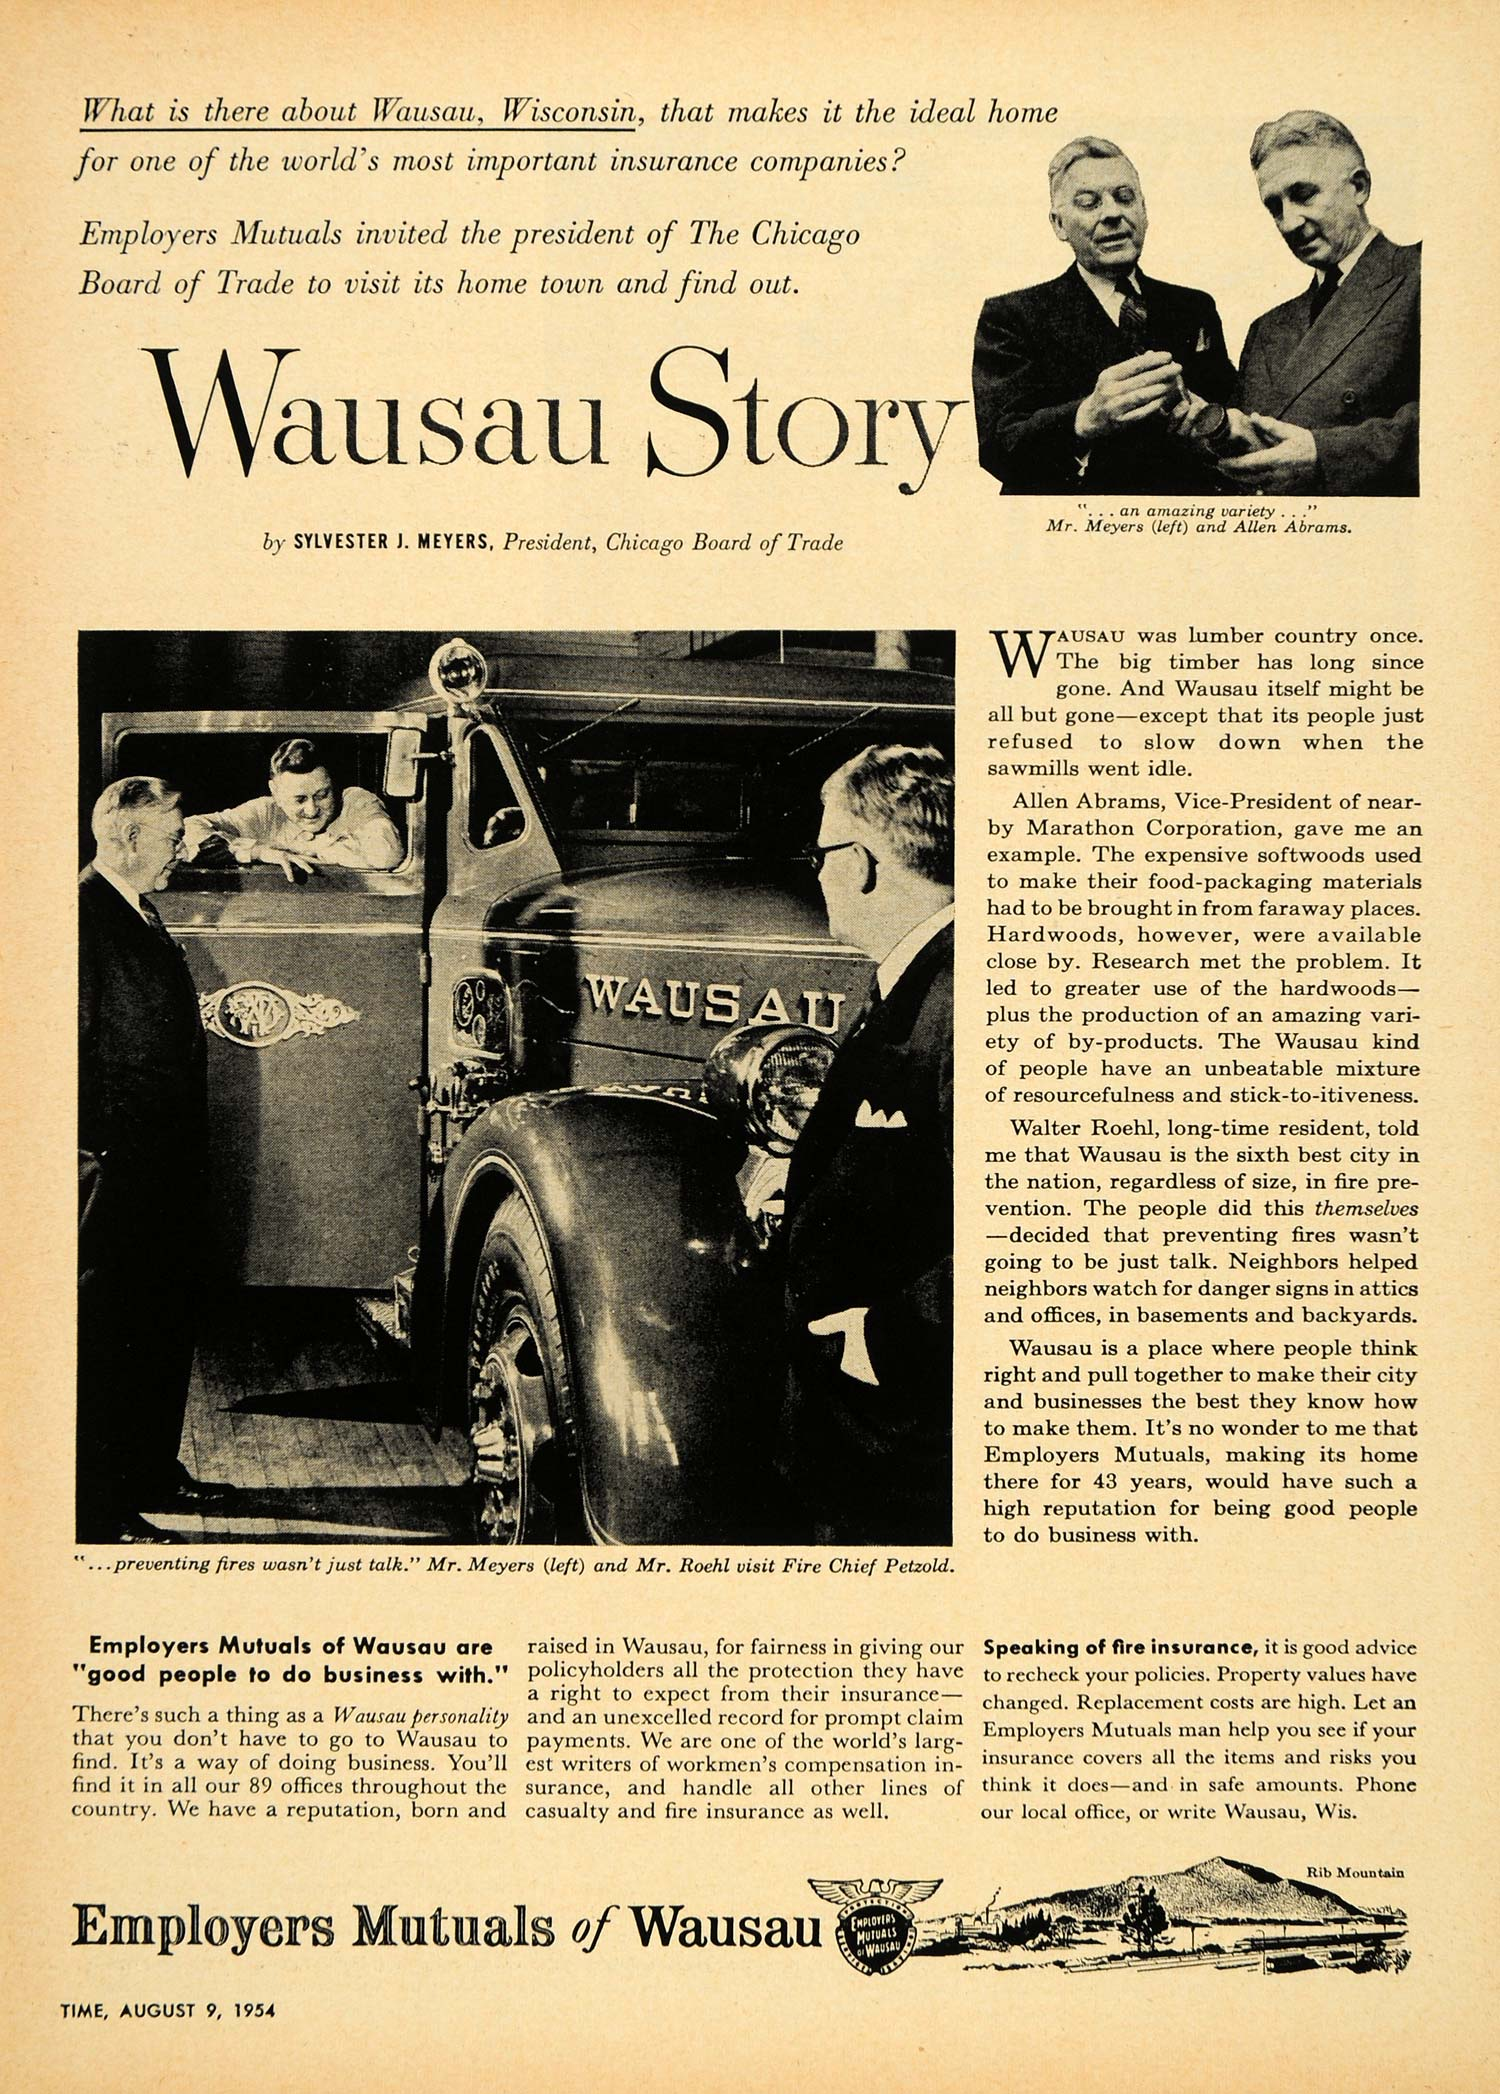 1954 Ad Employers Mutual Insurance Wausau Story Abrams - ORIGINAL TM3